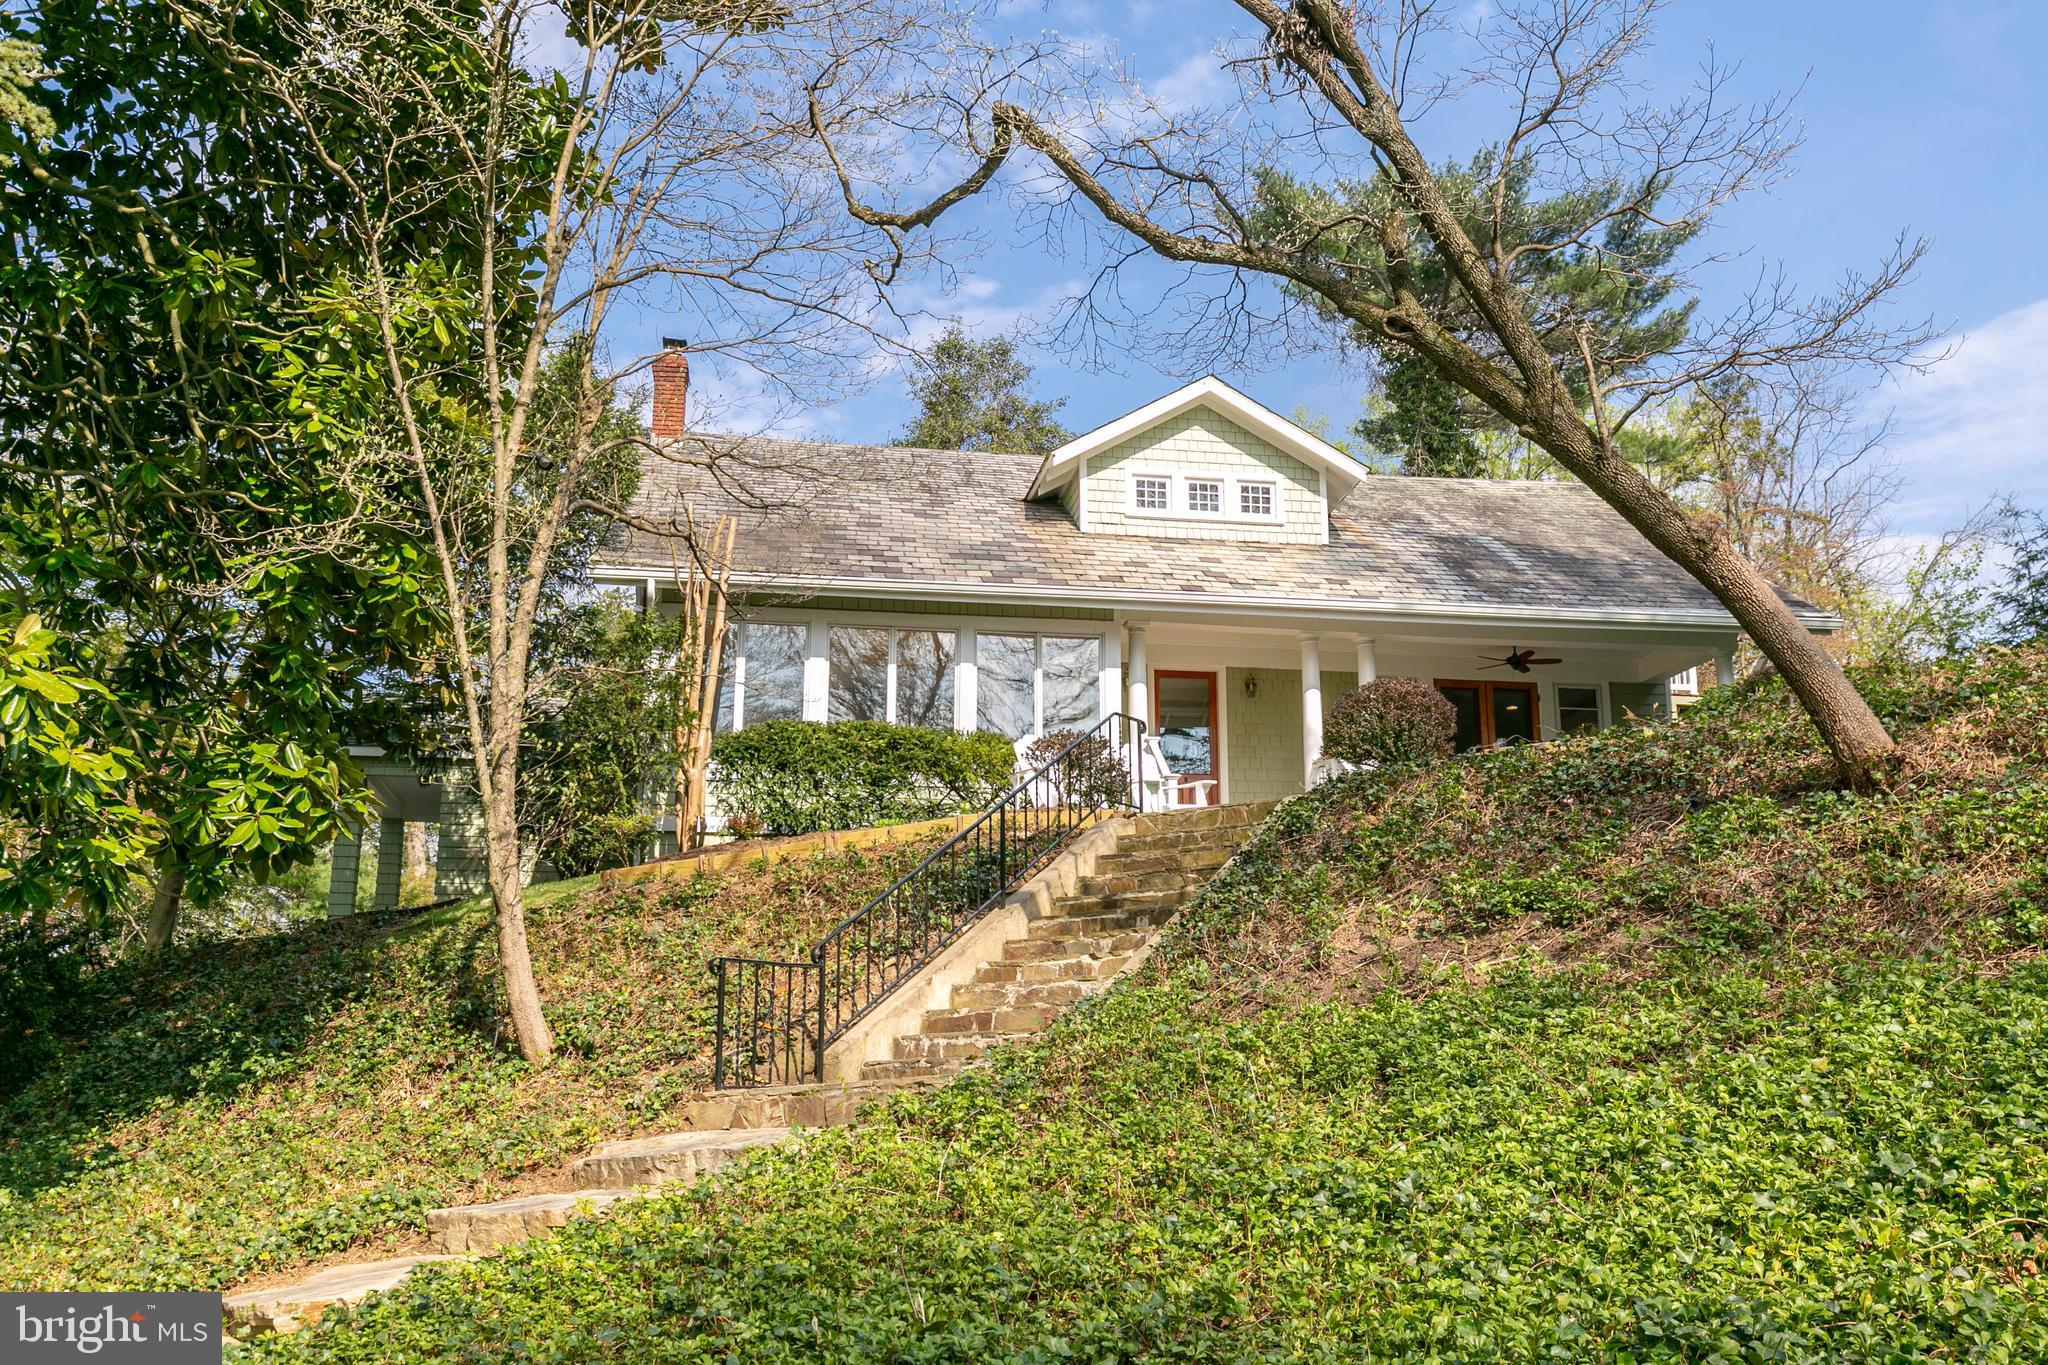 Perched atop one of the highest points in Round Bay, surrounded by nature, is this charming 1930's r